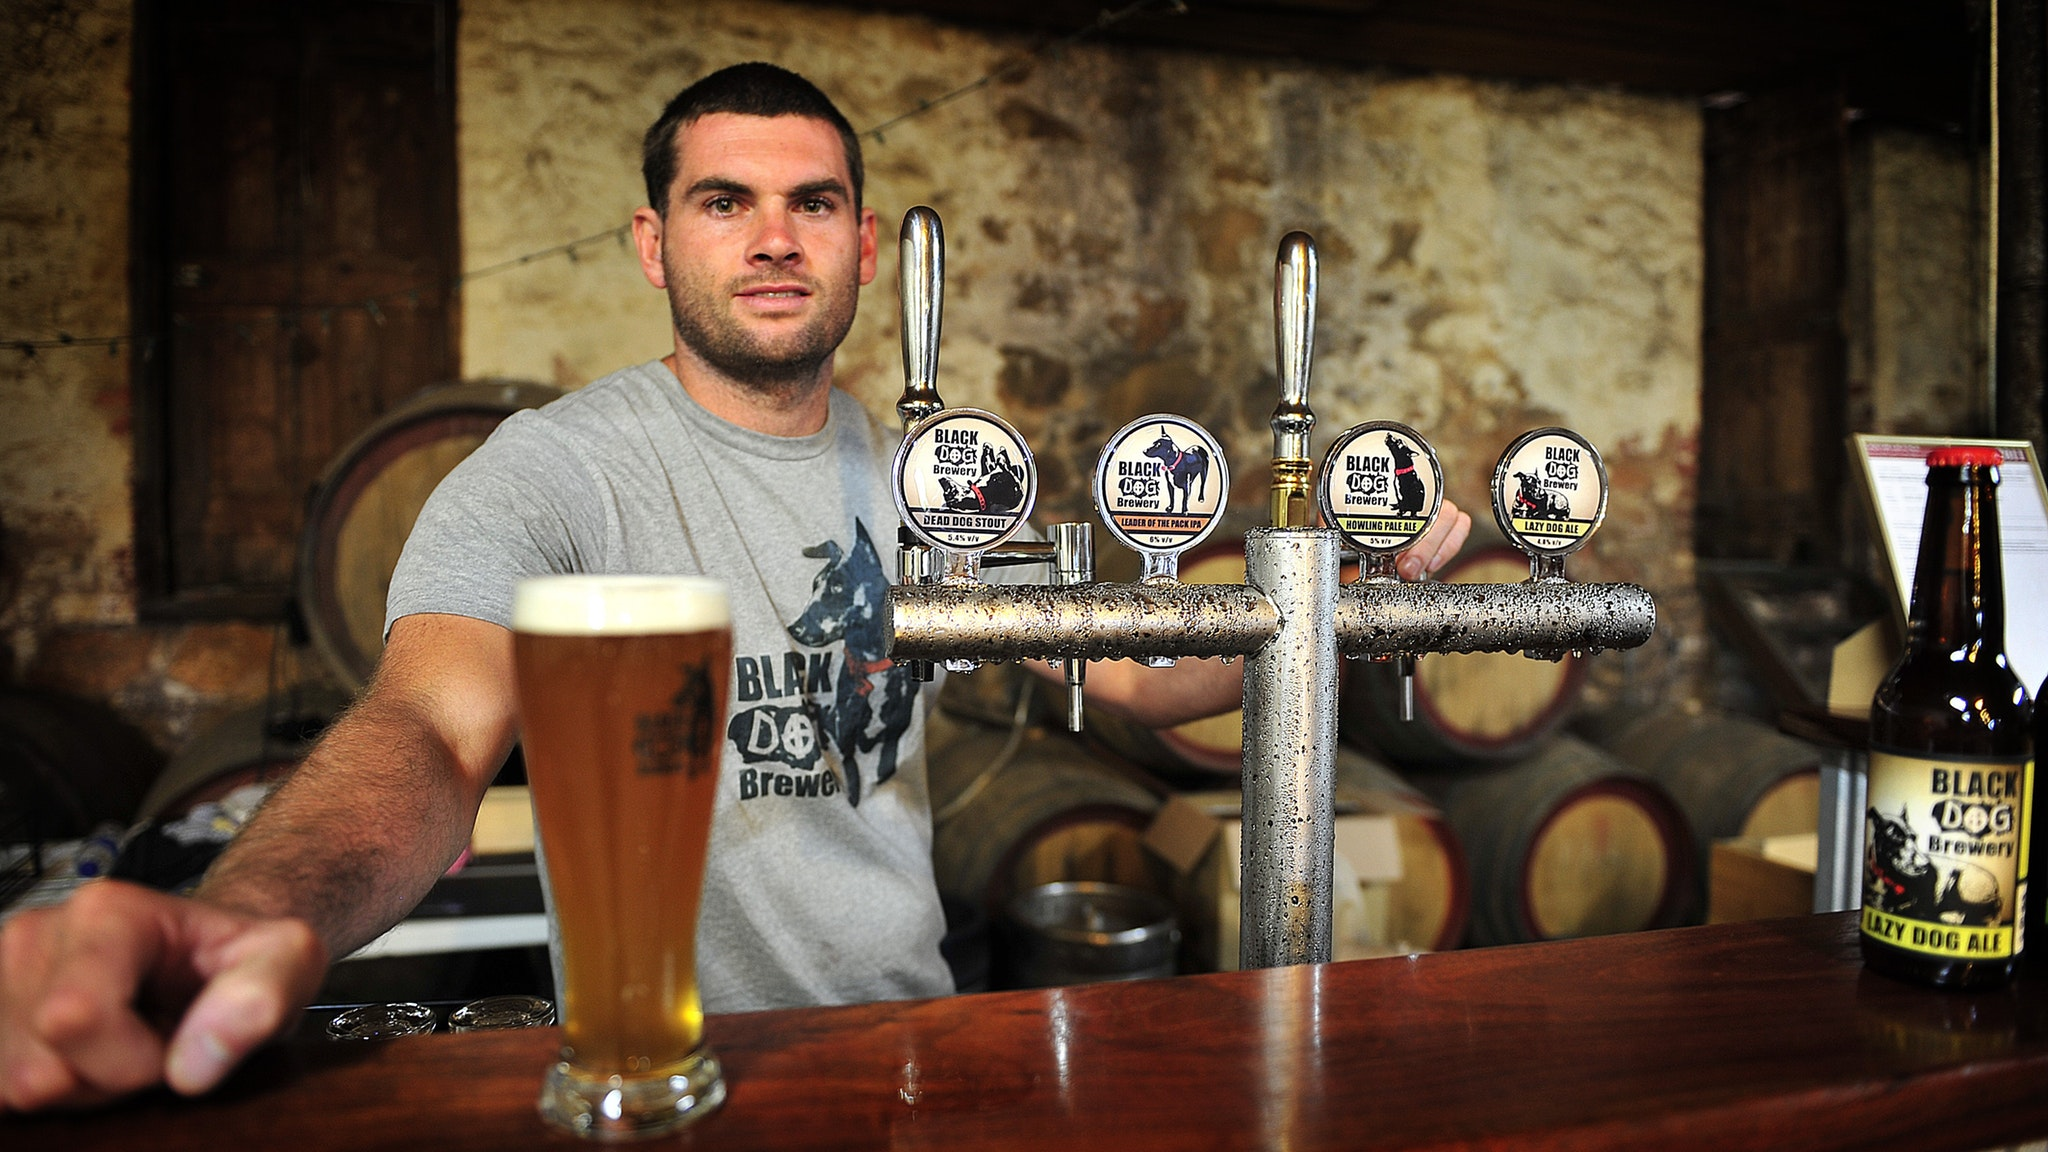 Handcrafted beers at Black Dog Brewery